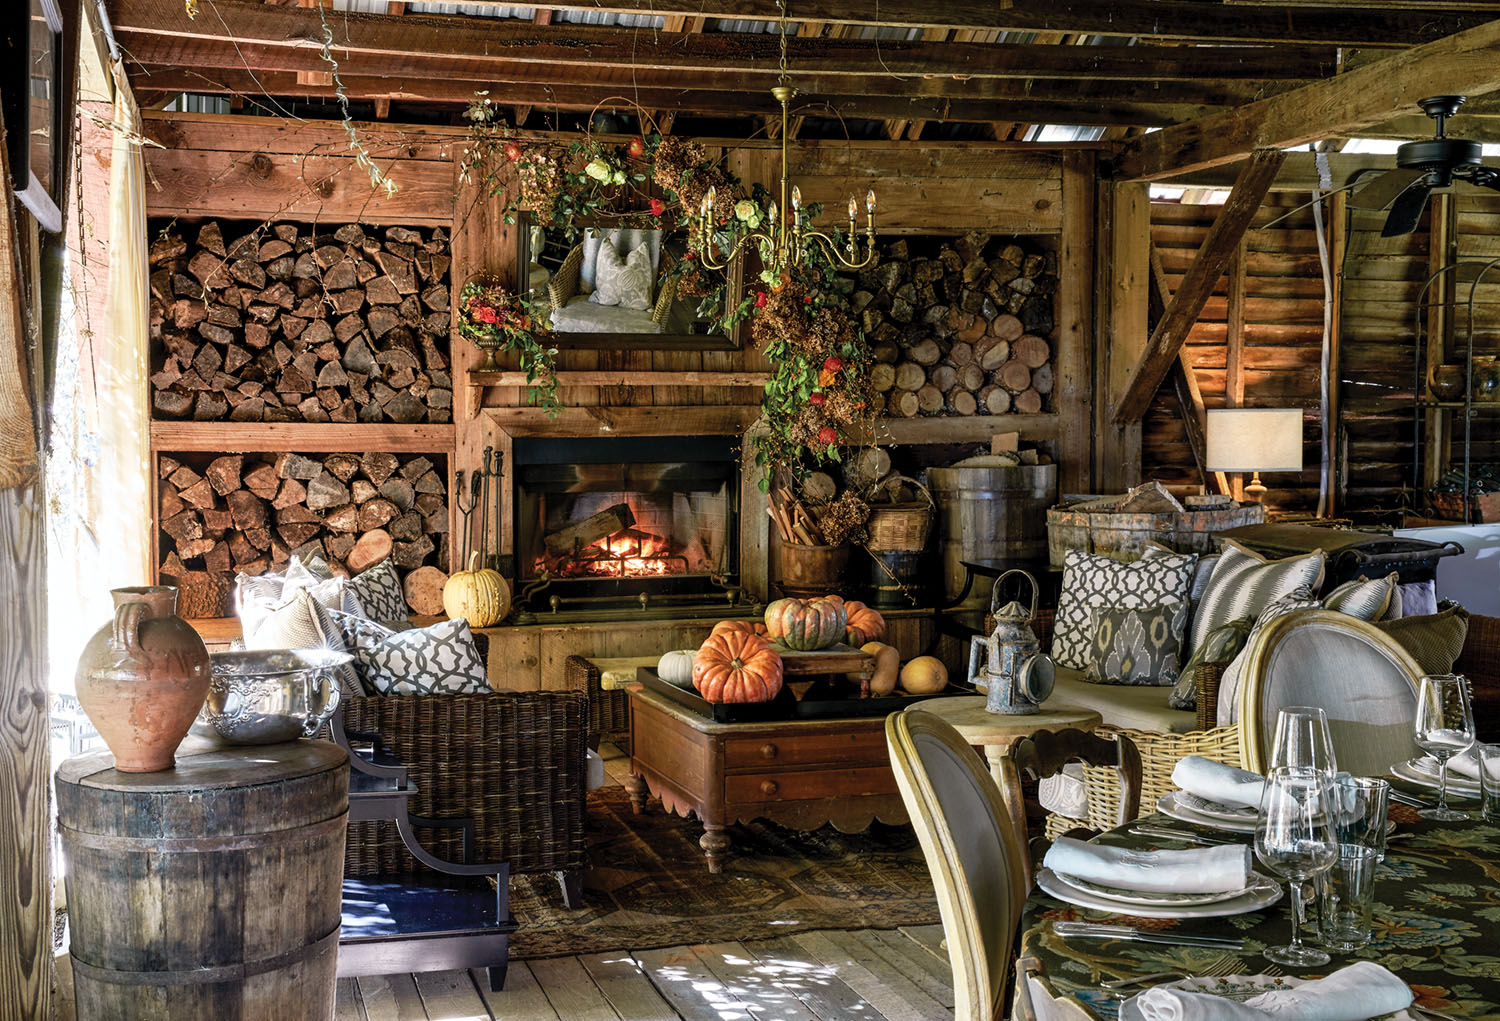 At Keith Robinson's home at Redwine Plantation, a large room with barnwood walls, floors, and ceilings. Ample firewood is stored in cubbies surrounding the hearth. Autumn floral arrangements, garlands, and pumpkins decorate the hearth and comfortable seating area.